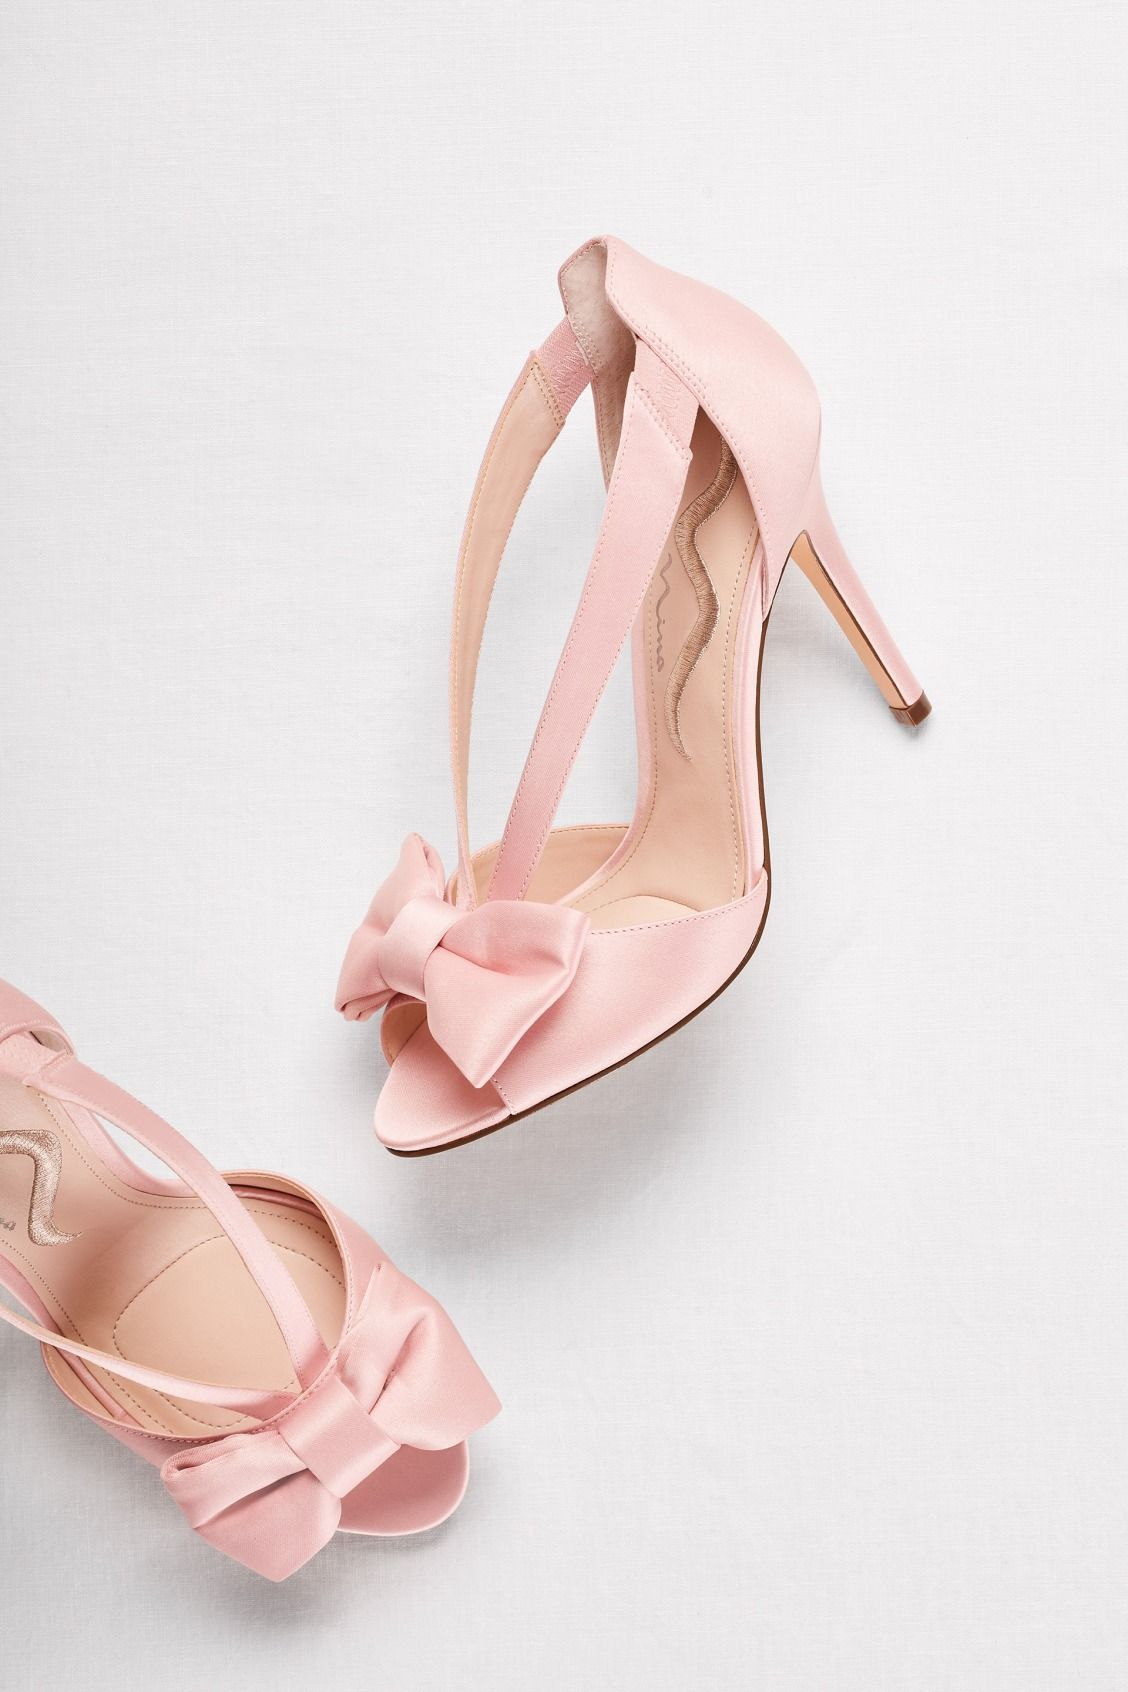 Strappy Bow Two Piece Pumps David S Bridal Pink Wedding Shoes Sparkle Wedding Shoes Wedding Shoes